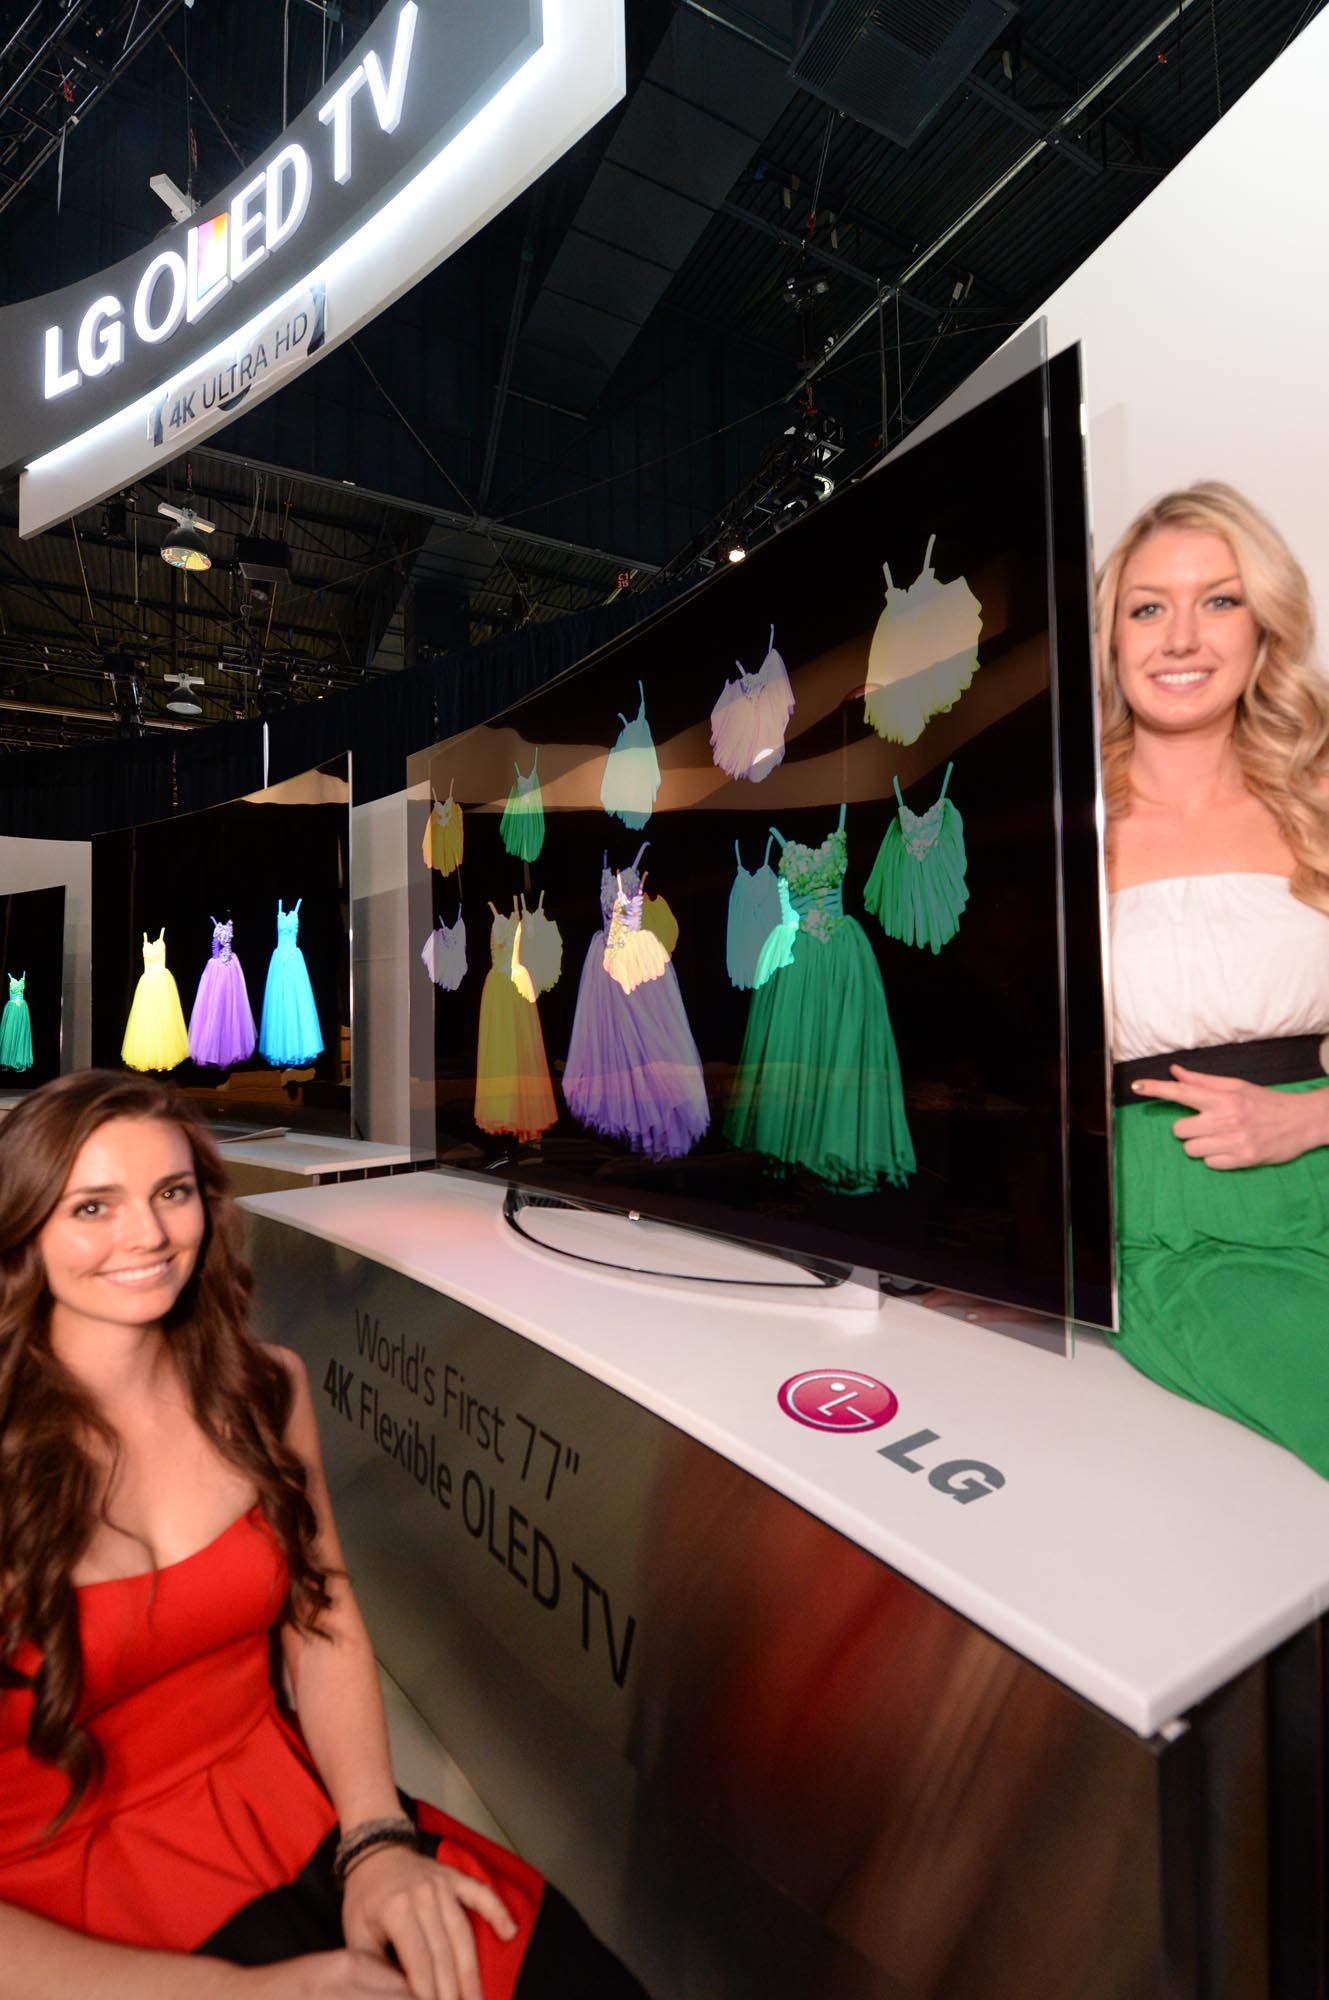 Two models showcasing the world's first Flexible OLED TV by LG at CES 2014